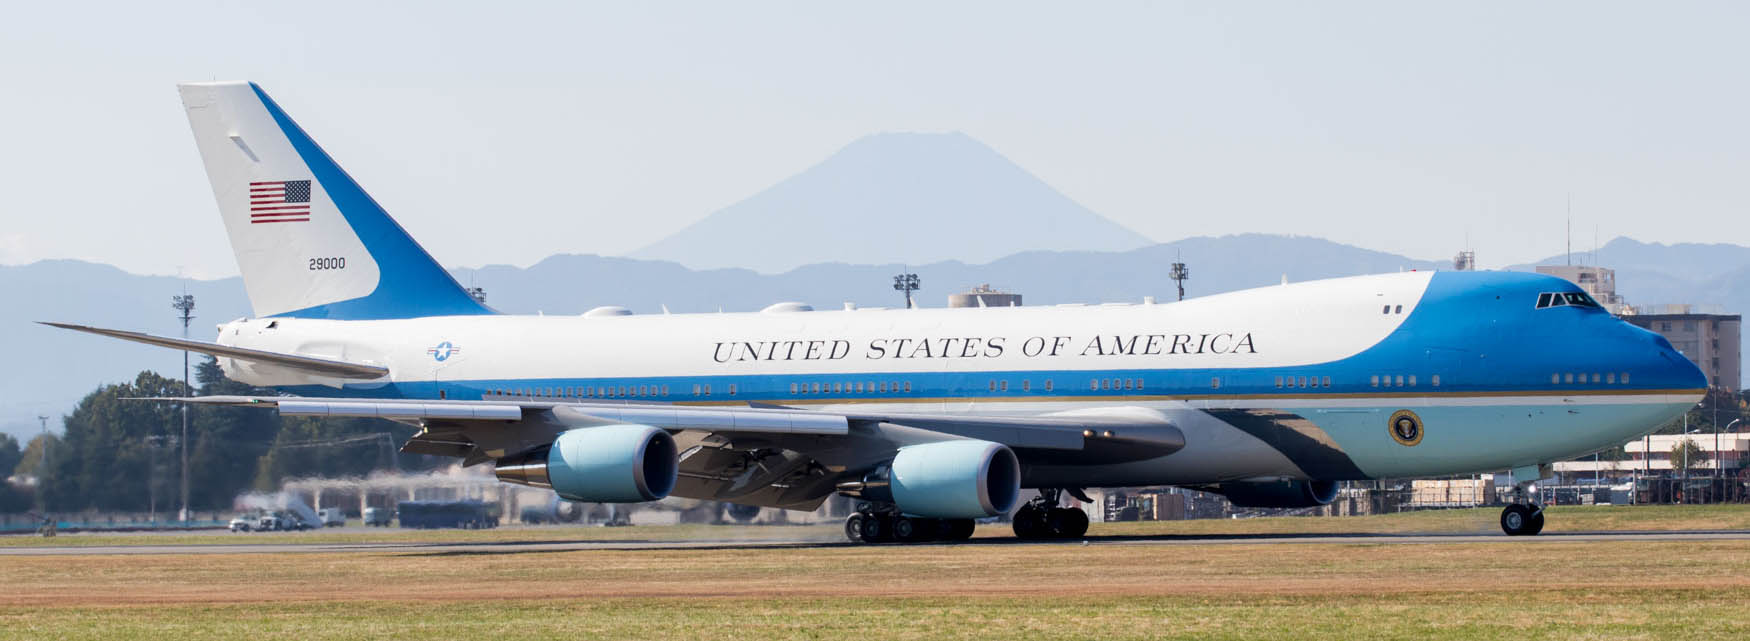 Air Force One Lands at Yokota Air Base with President Trump Onboard